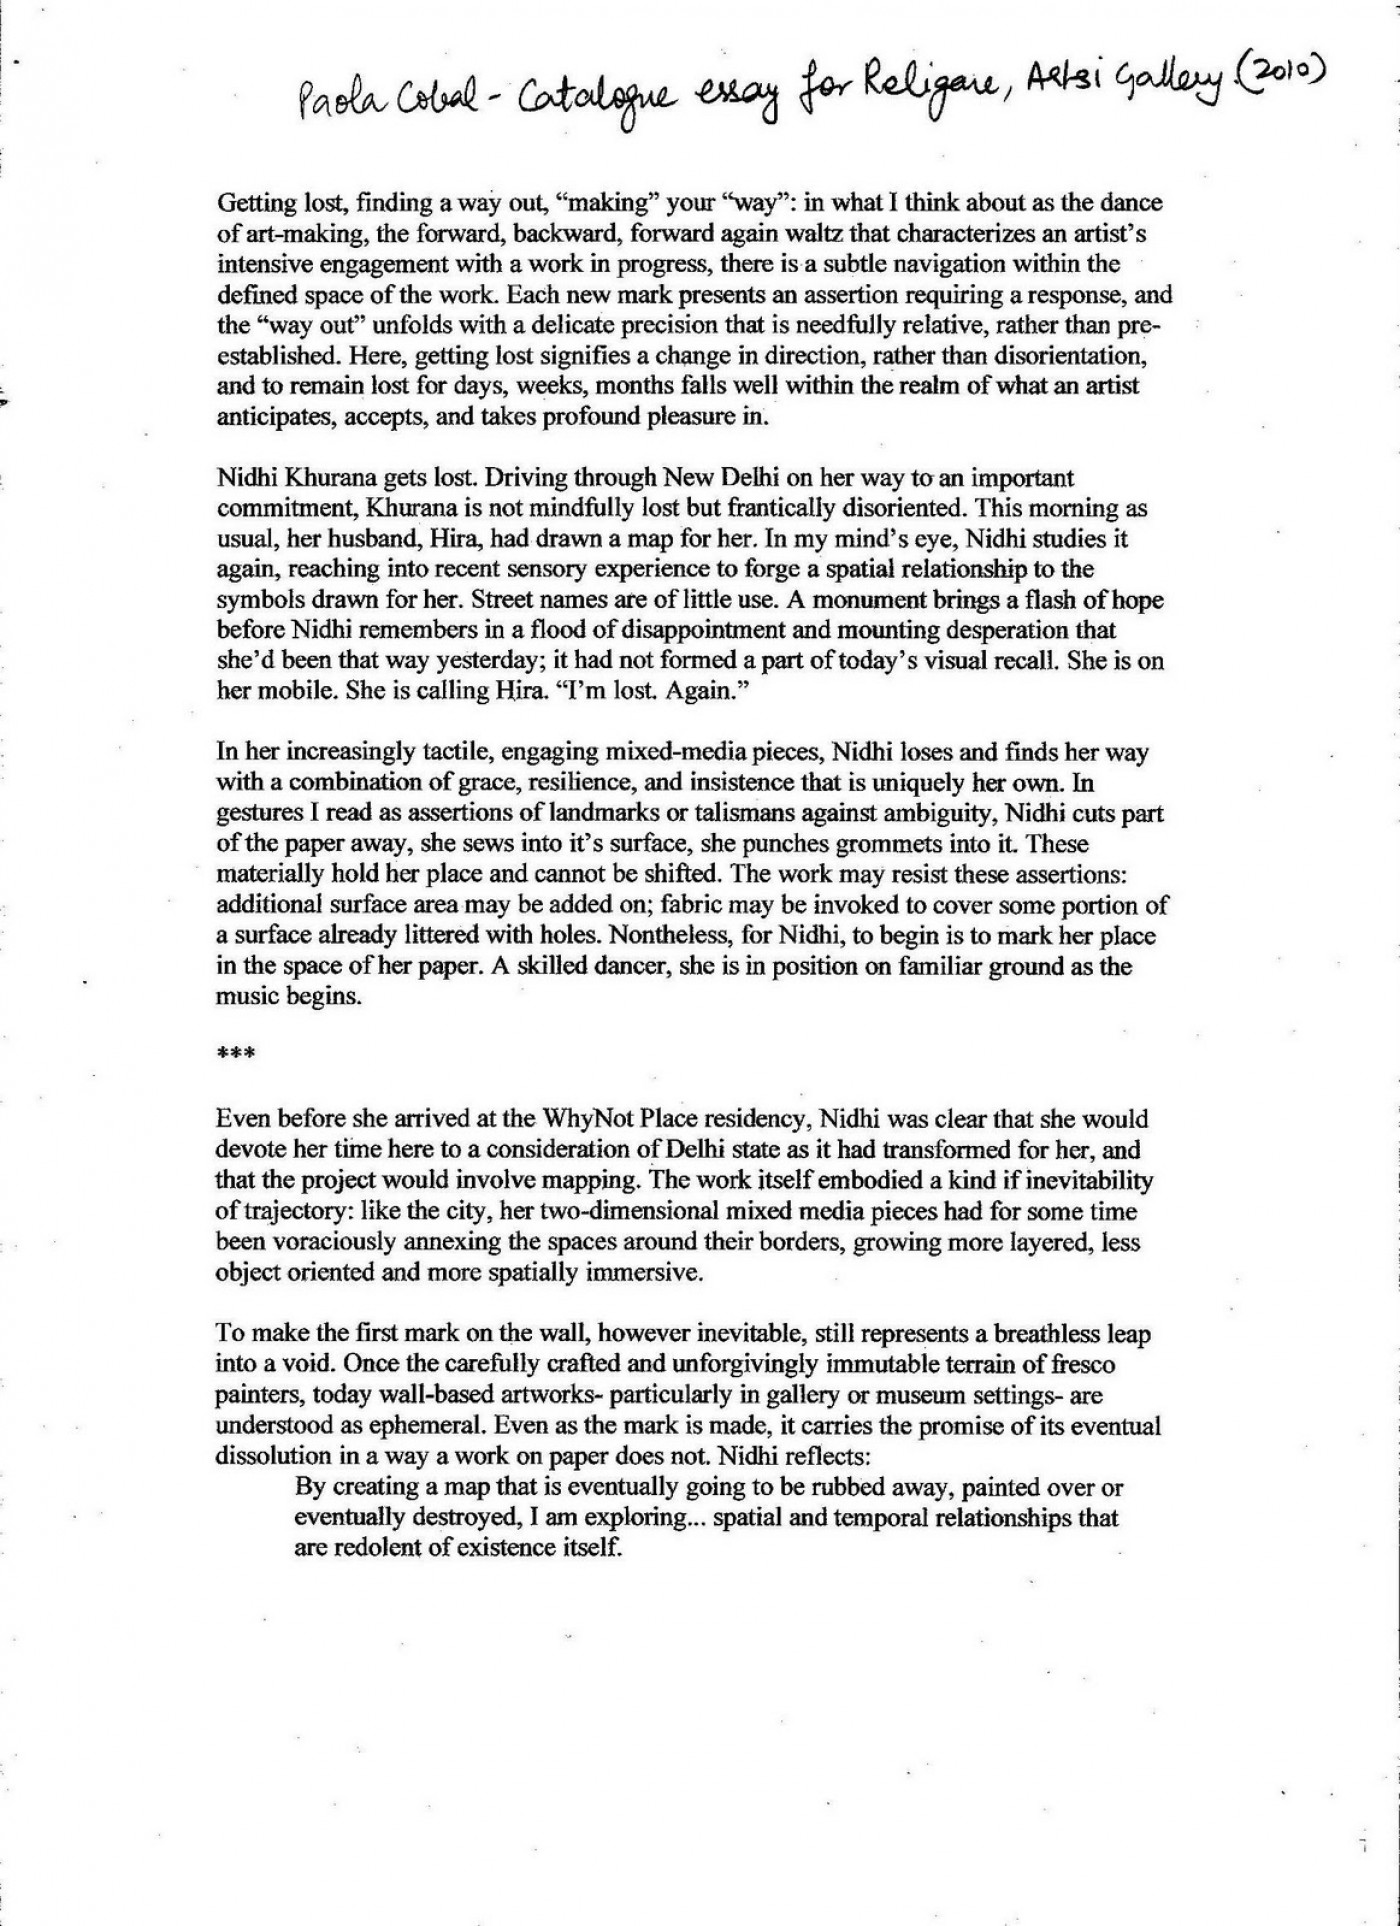 009 Paolaessay Essay Example On Stupendous Fear Of Darkness My Failure Ways To Overcome Public Speaking 1400